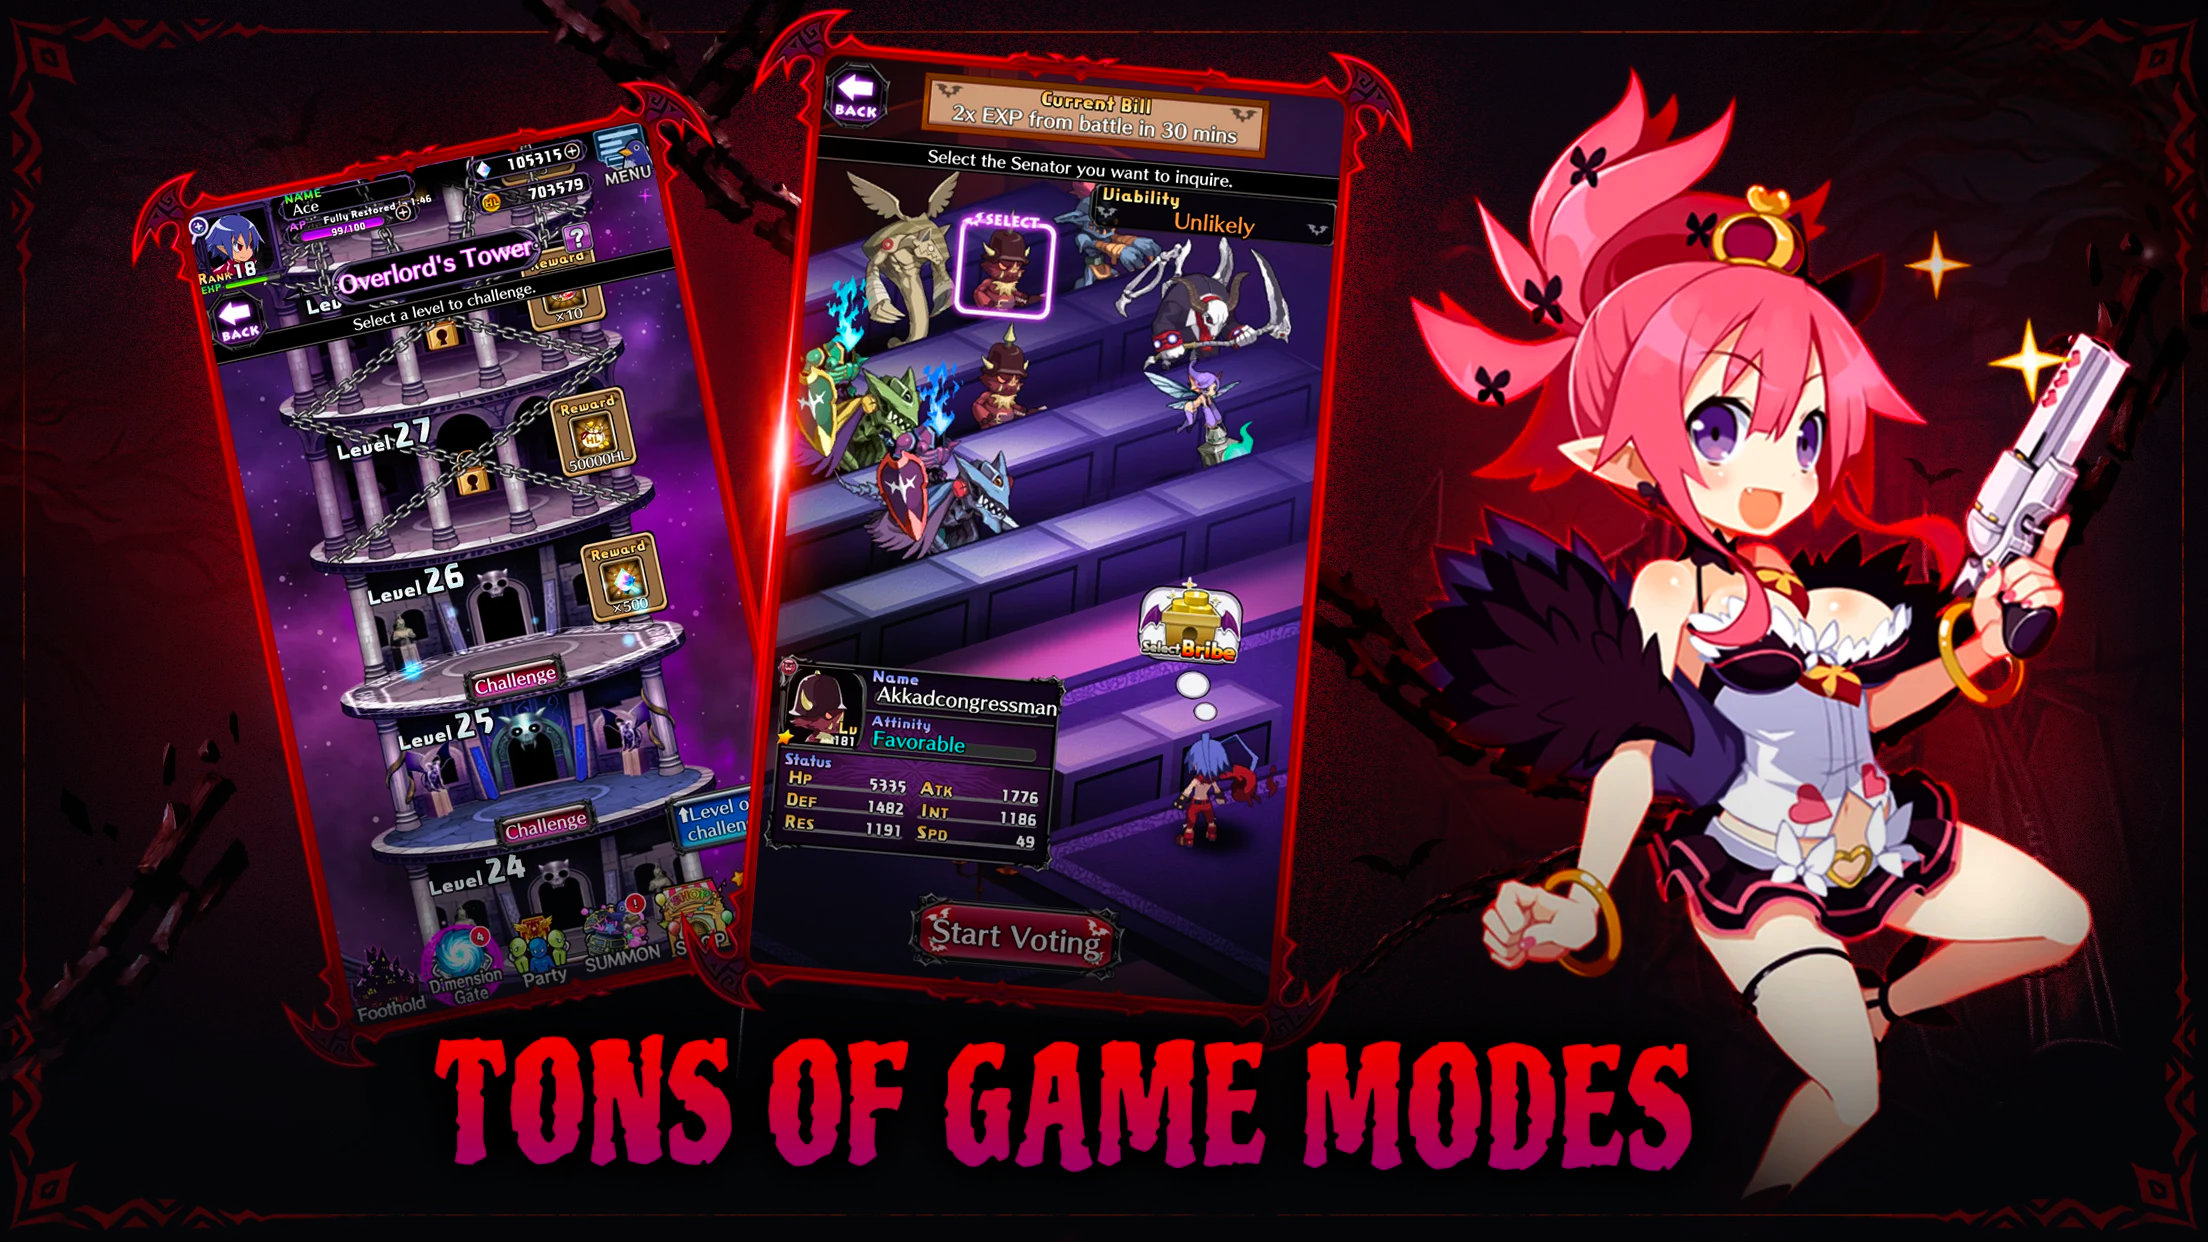 Disgaea RPG screenshots showing multiple game modes such as Overlord's Tower and demon senators.